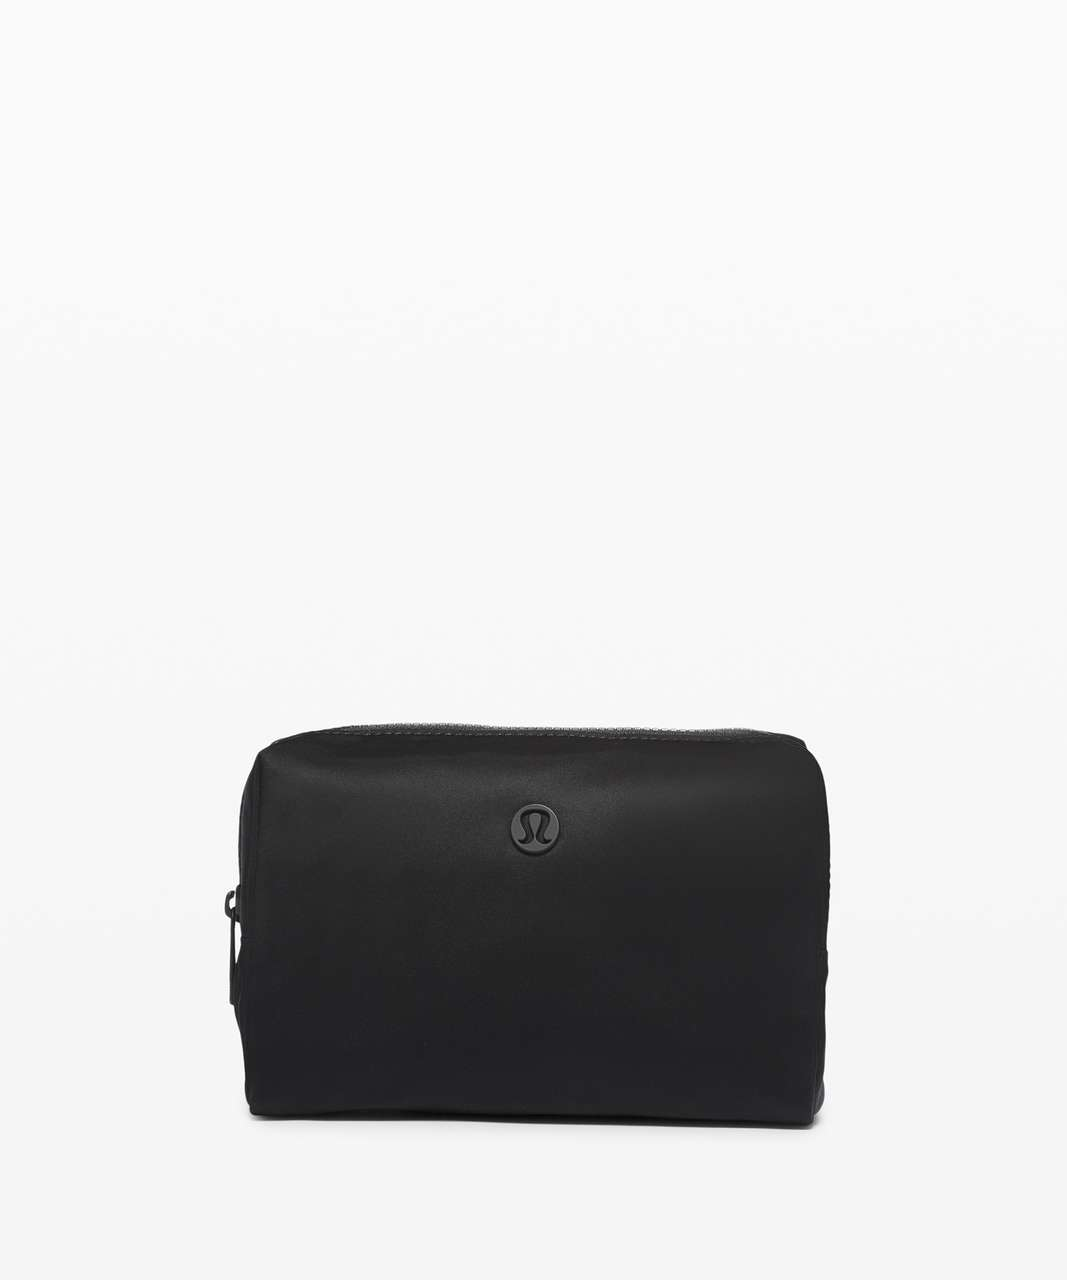 Lululemon All Your Small Things Pouch *Mini 2L - Black